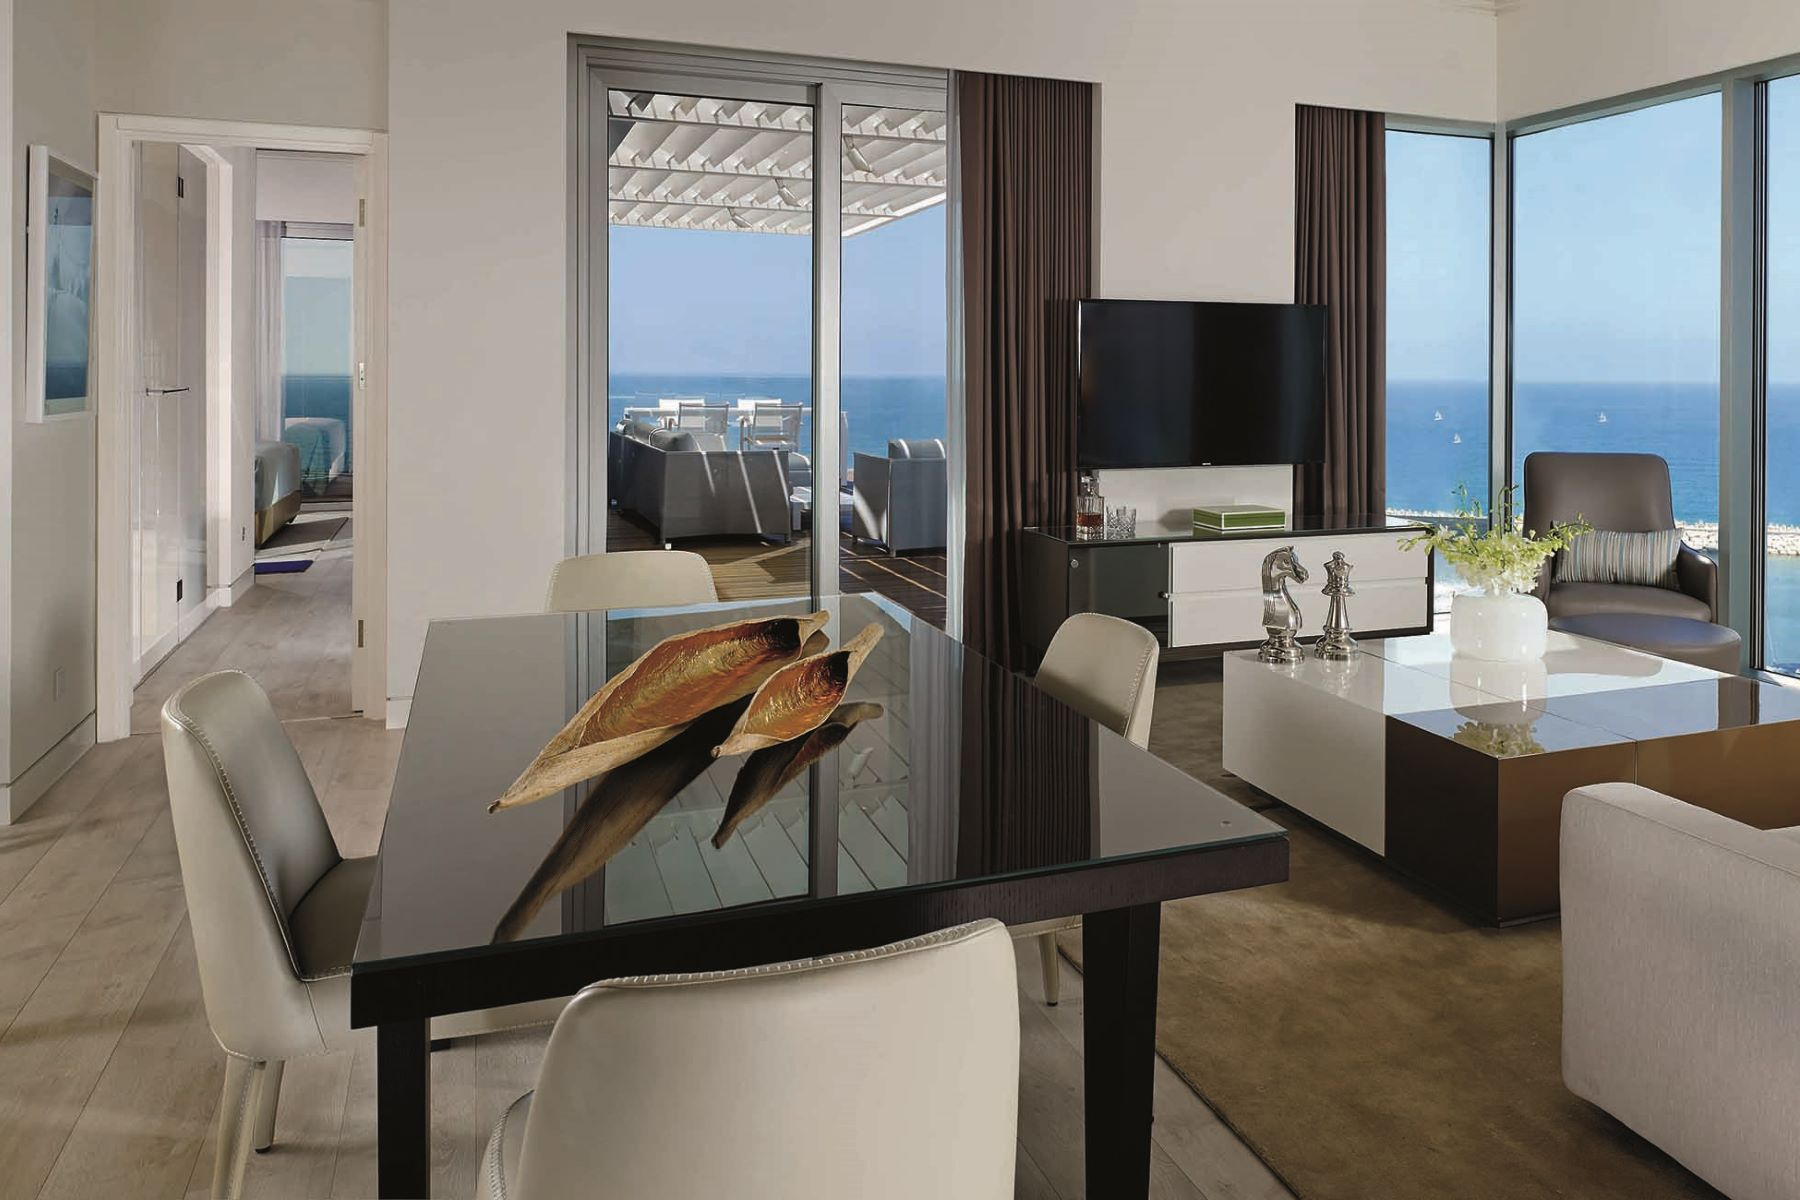 Apartment for Sale at Ritz-Carlton Residences Herzliya Penthouse Herzliya, Israel Israel